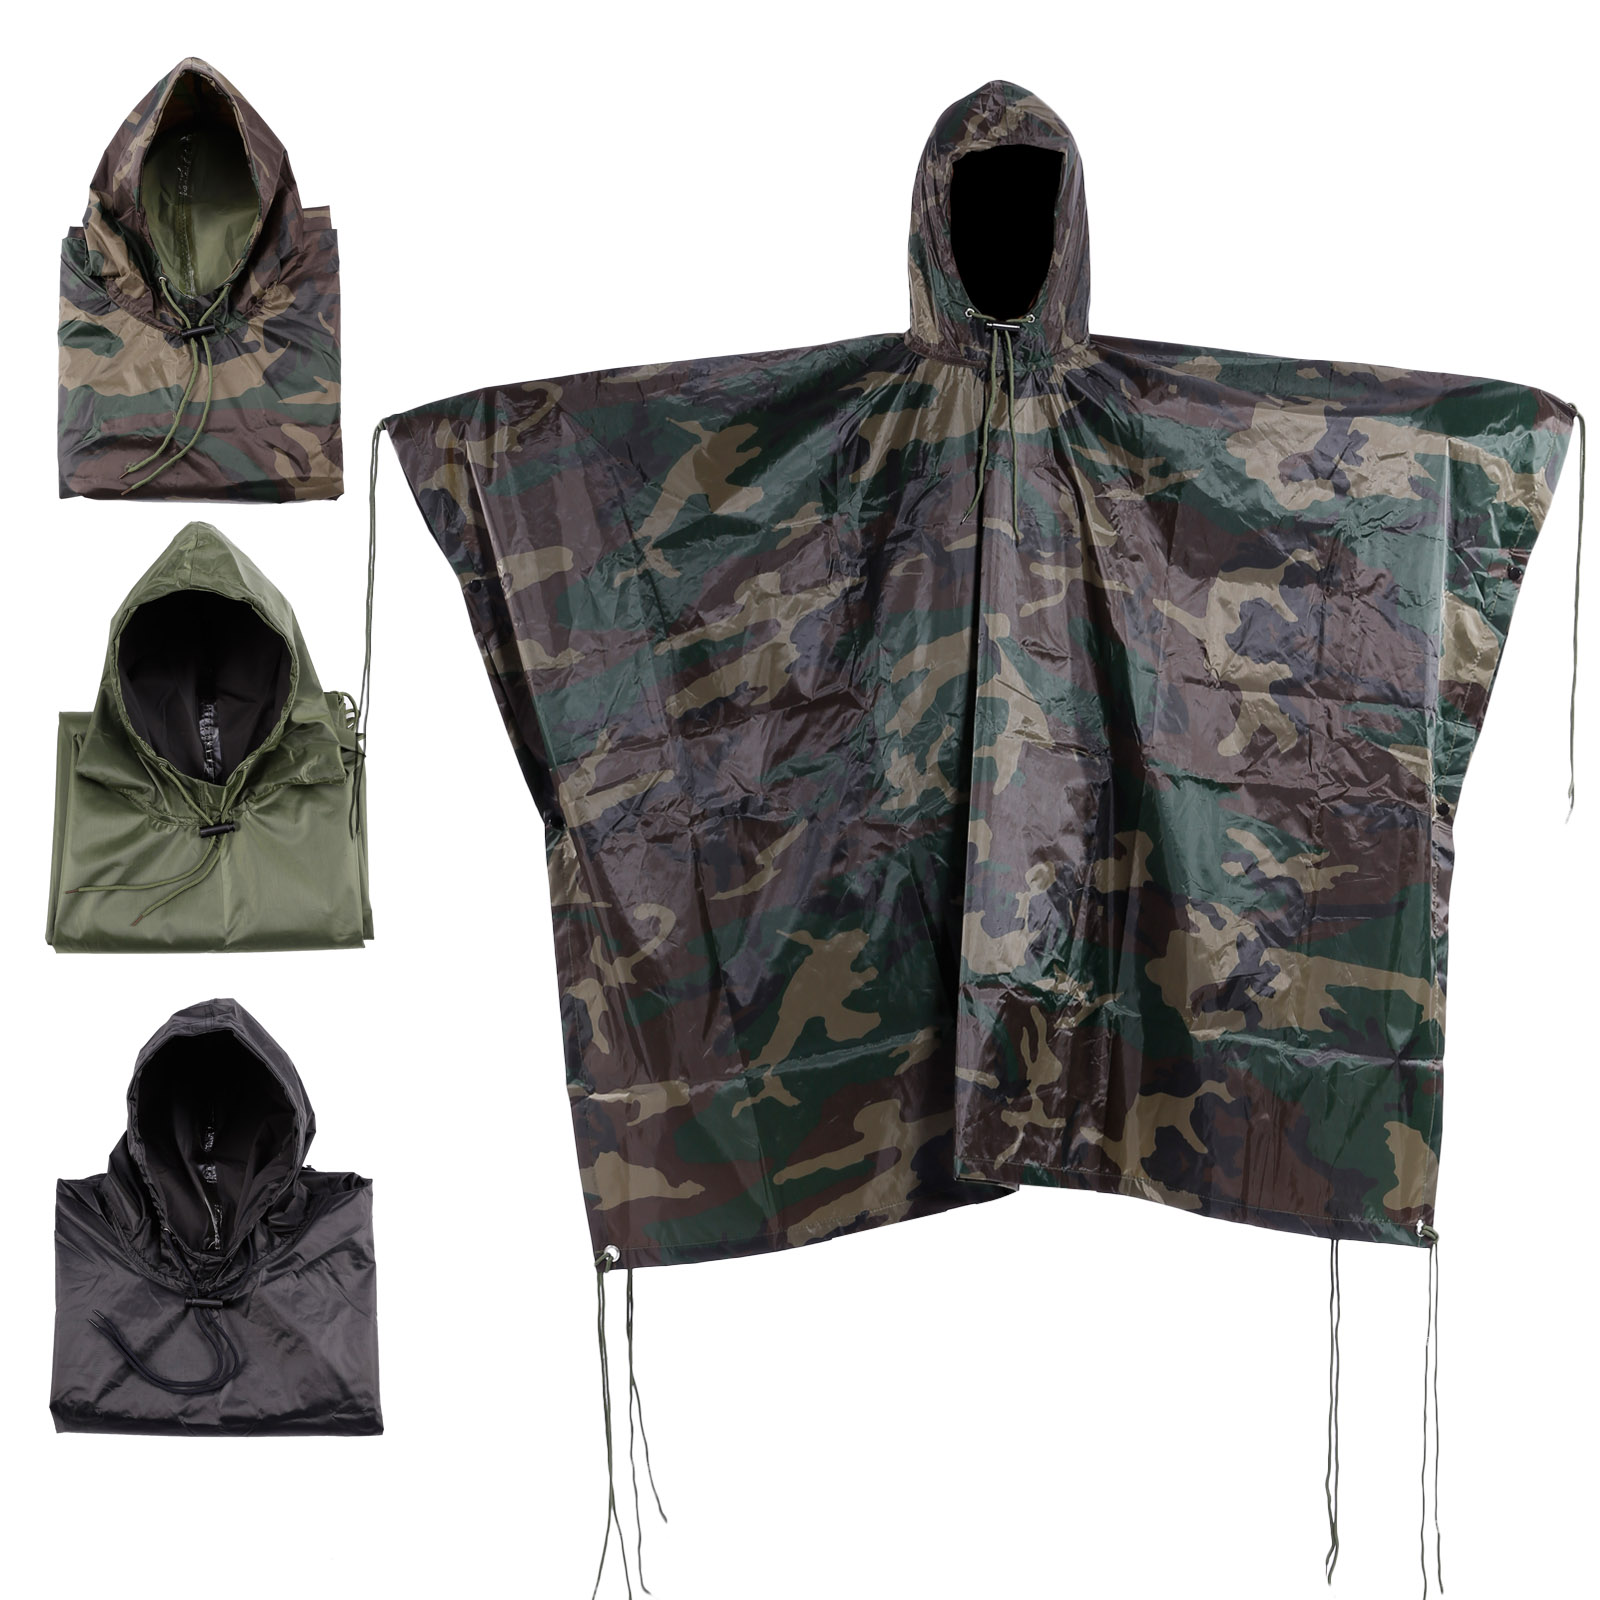 Army Waterproof Festival Rain Ripstop Military Camping Hiking hooded Poncho new